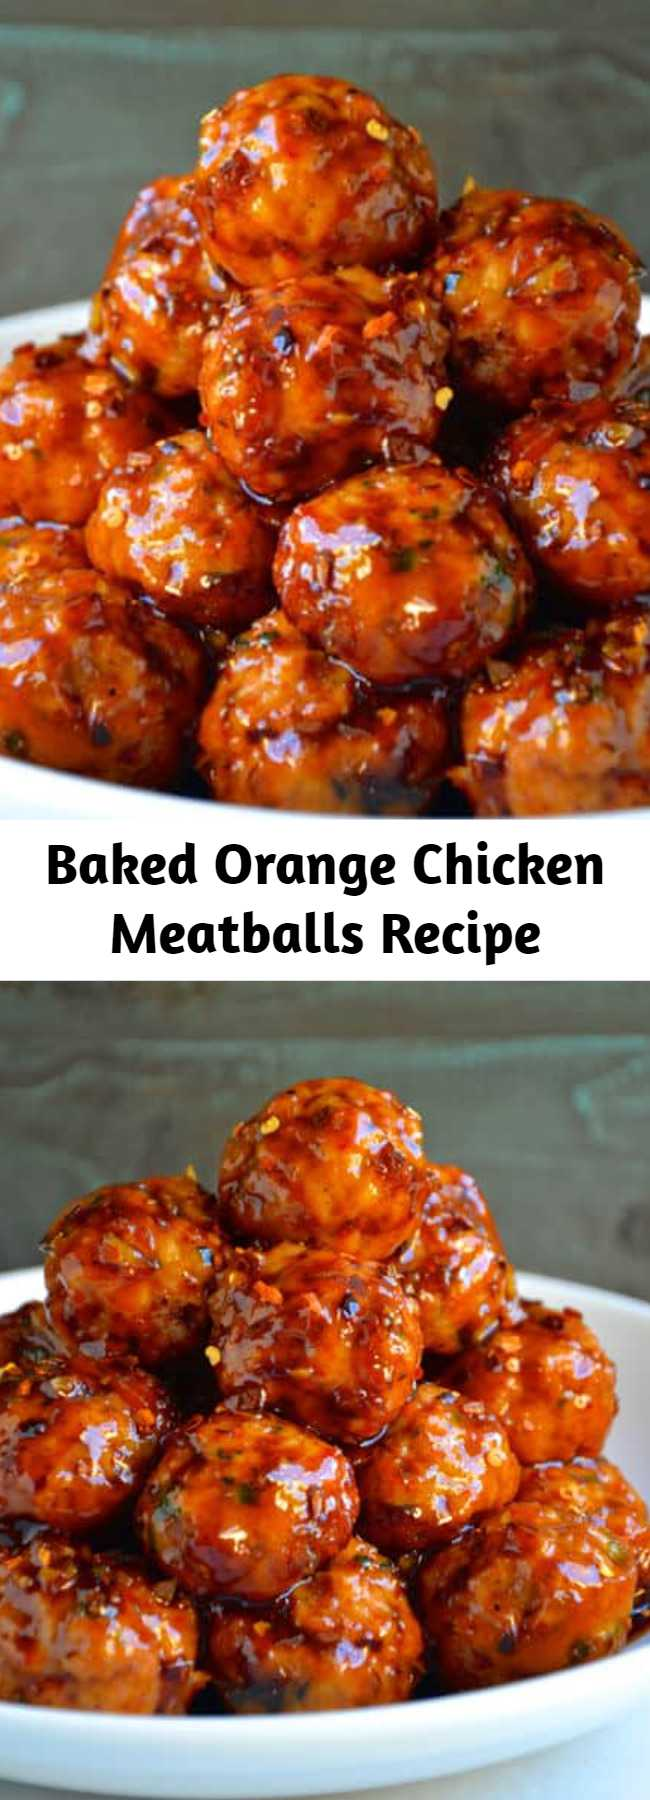 Best of all, these meatballs will be on your table in 30 minutes or less. They're the perfect make-ahead weeknight meal, a school lunch standout, and the ultimate entrée to pair with homemade fried rice and chocolate-dipped fortune cookies. A fake-out for takeout has never been easier!